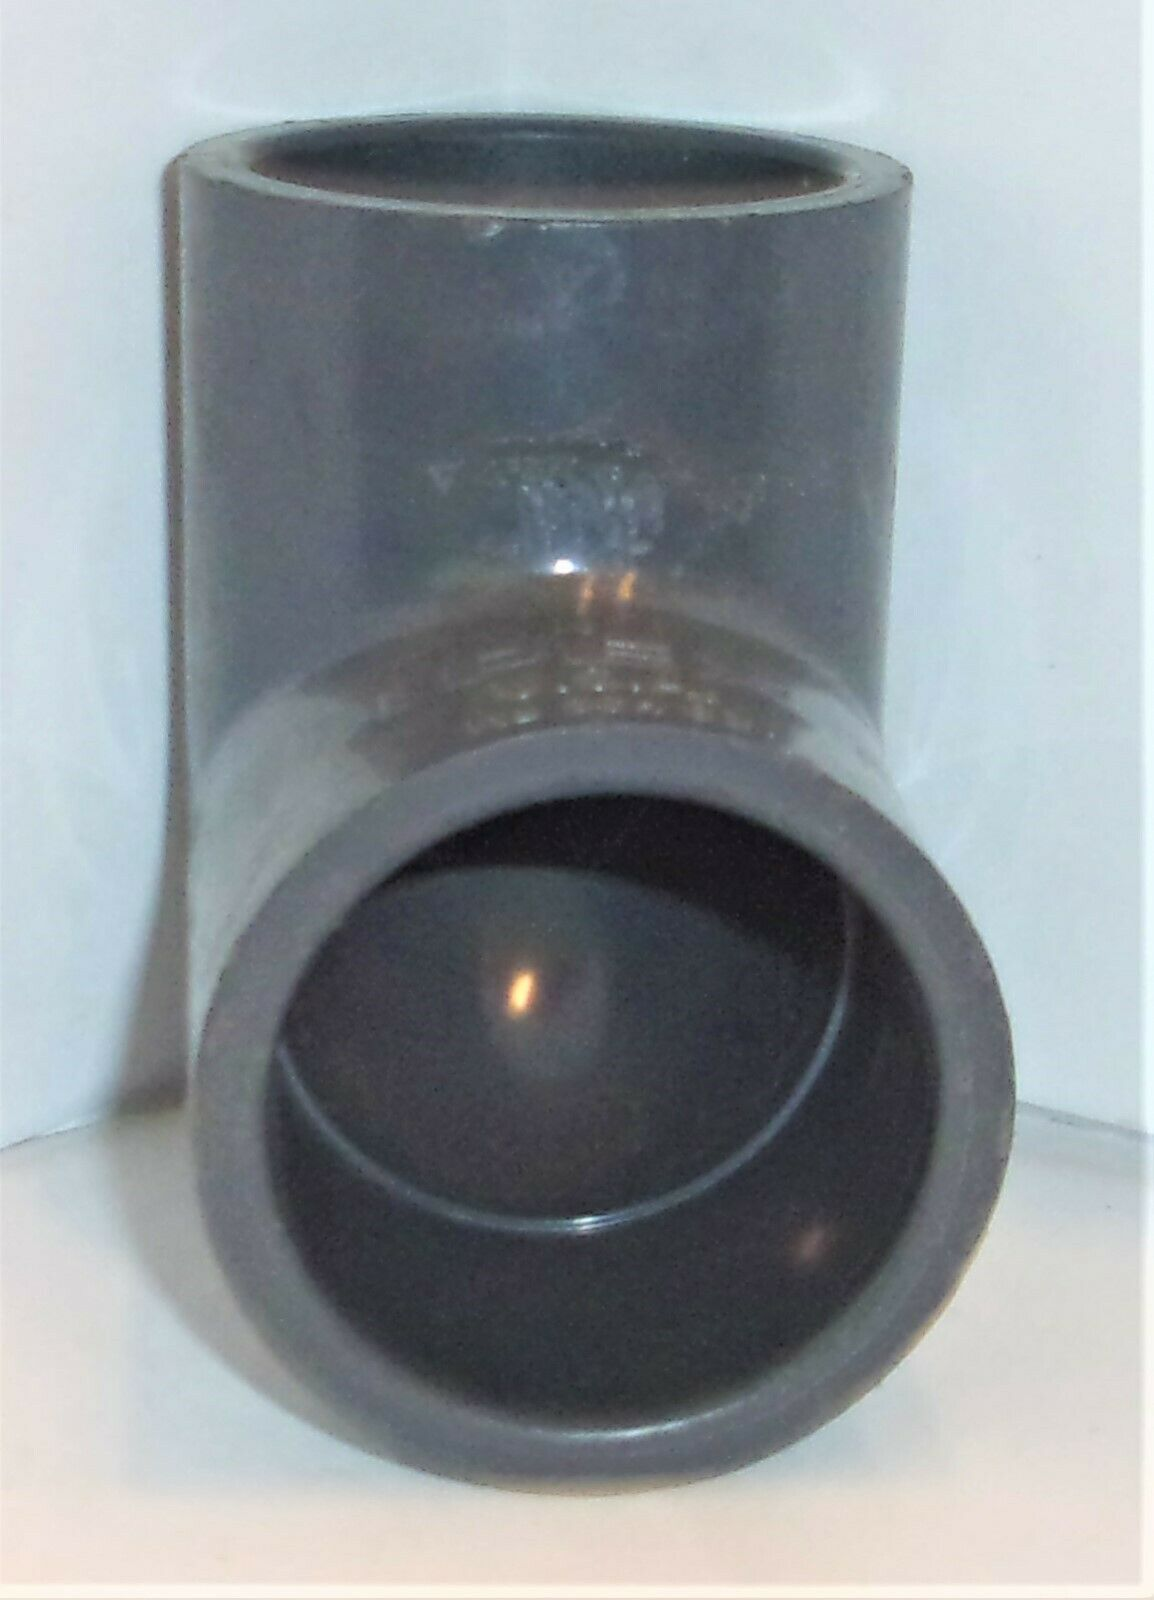 Ipex 3 INCH PVC-I Pipe SCH 80 SLIP FIT COUPLING SOCKET 4-3//16 X 4 LONG # D2467